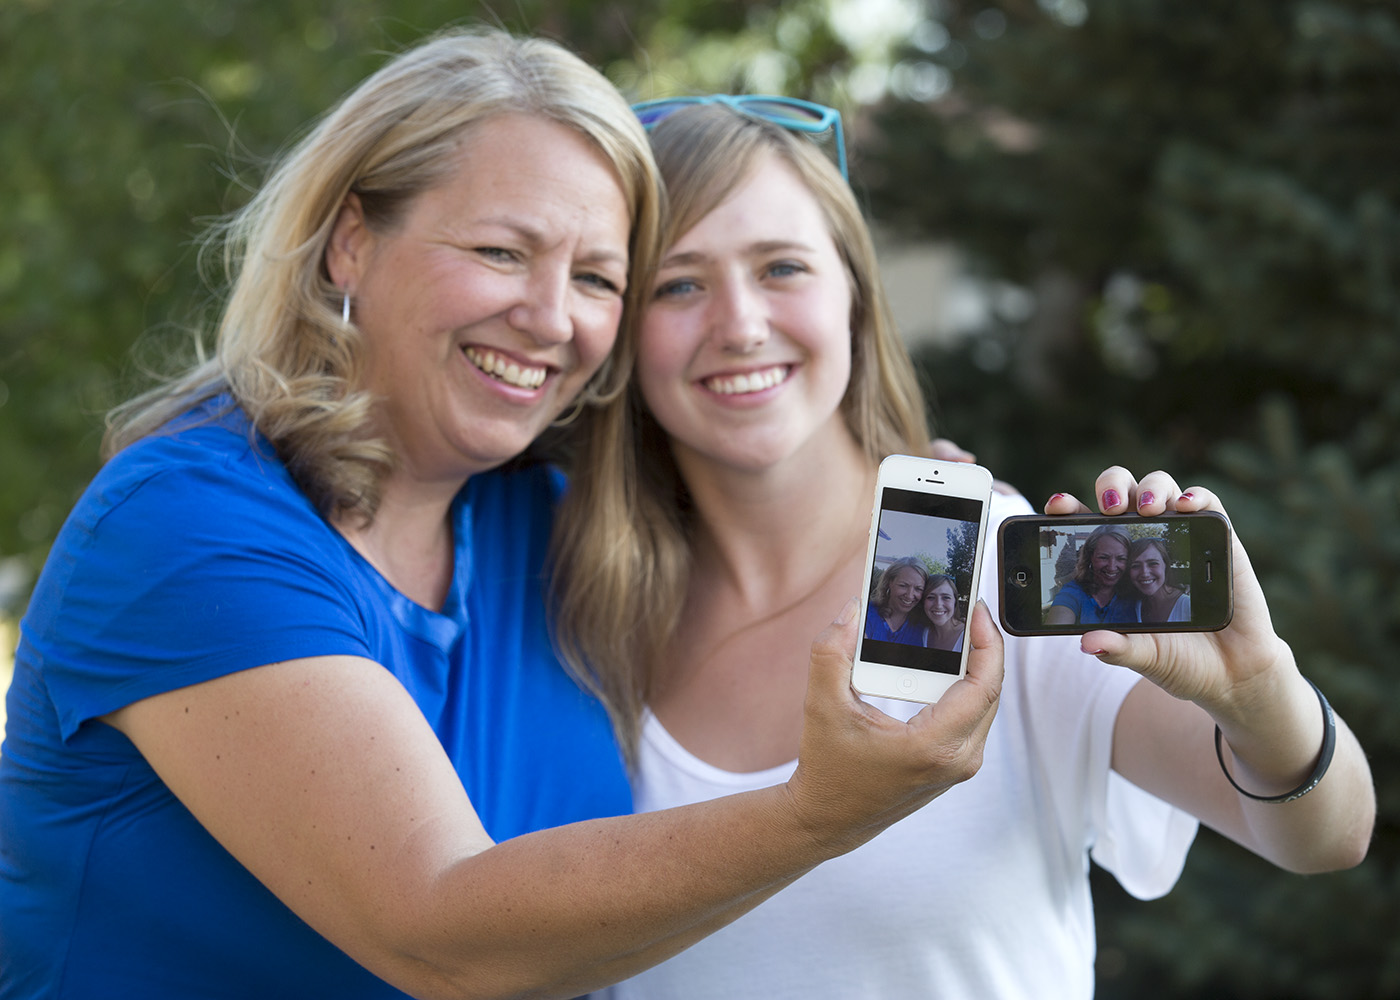 Syd and Brooke Jacques take photos of themselves on their smart phones. FOMO is (BYU Photo)